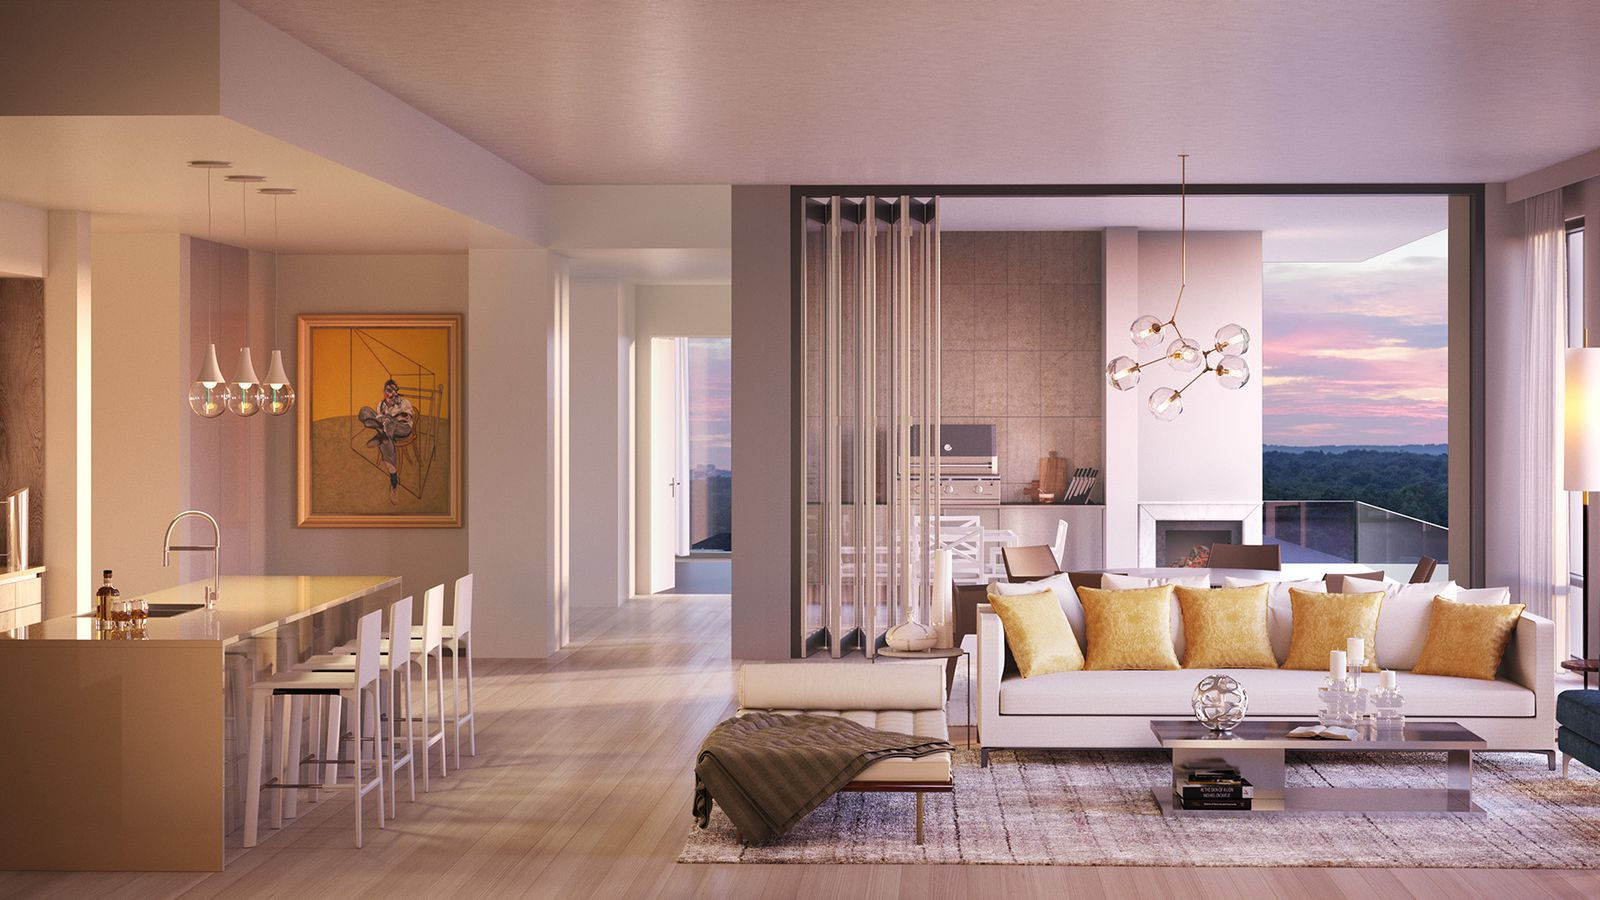 At Buckhead S Ritzy The Charles Expect 4M Condo Prices Curbed Atlanta